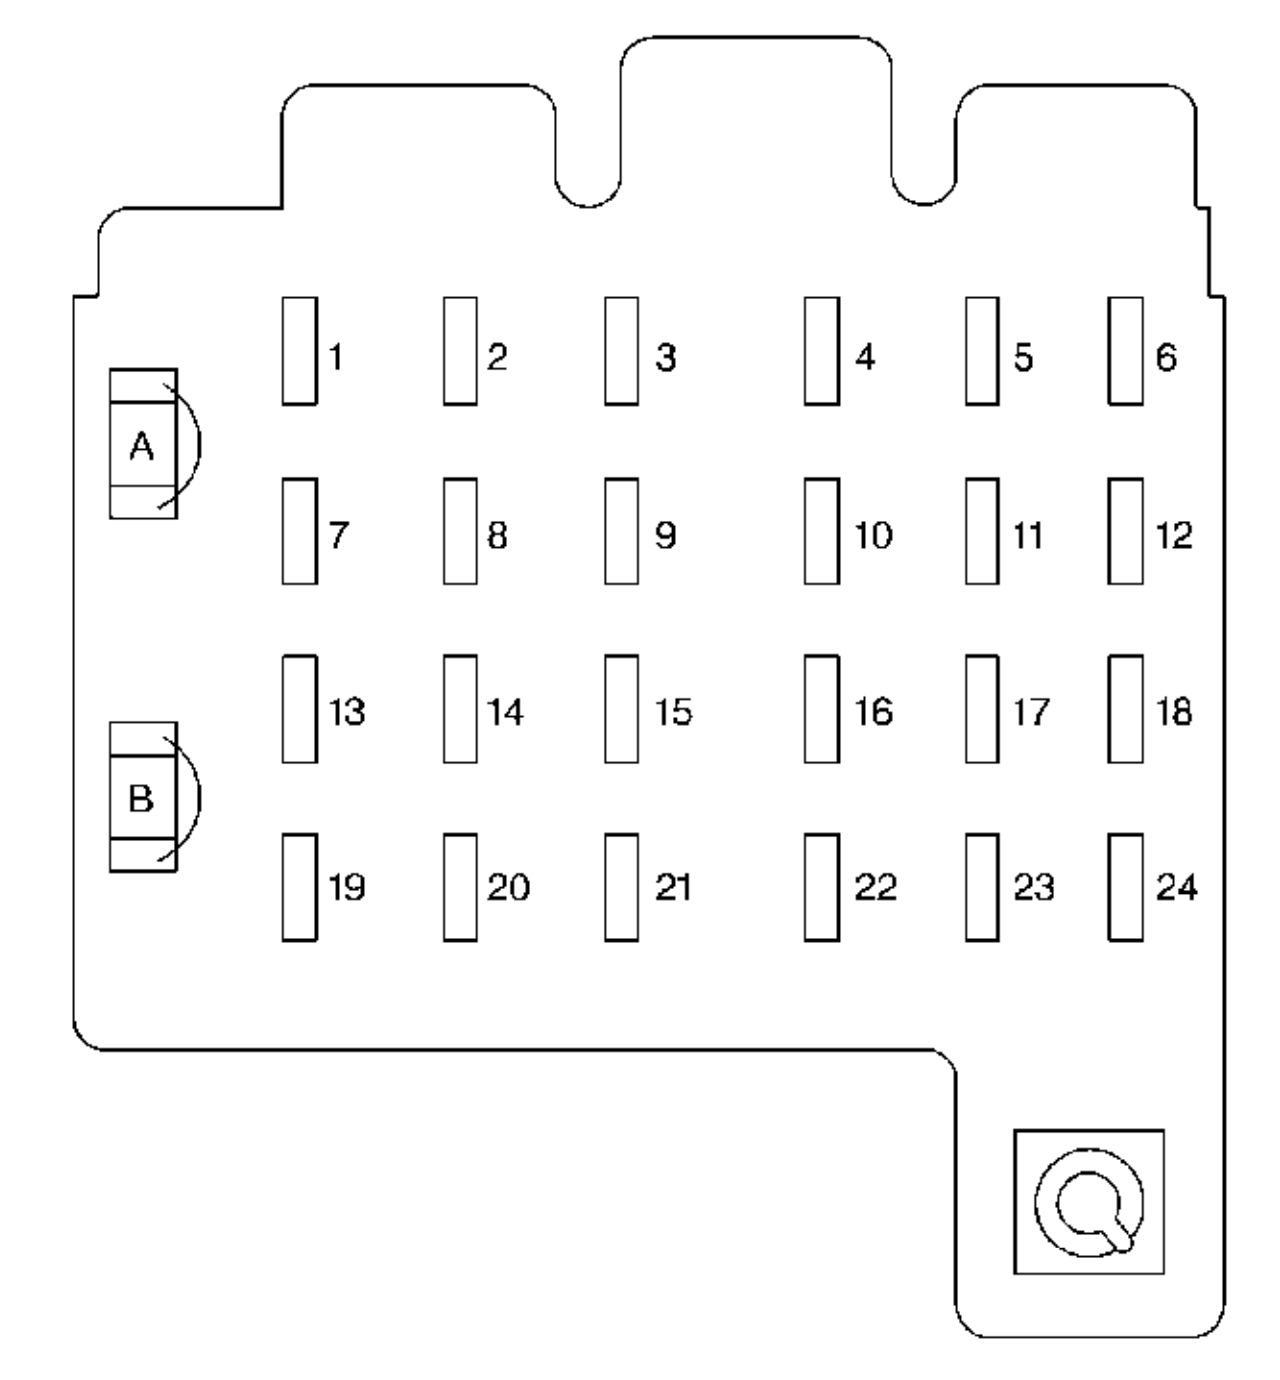 98 Suburban Fuse Box Blog About Wiring Diagrams 1987 Chevy Fuse Box Diagram  95 Chevy S10 Fuse Box Diagram